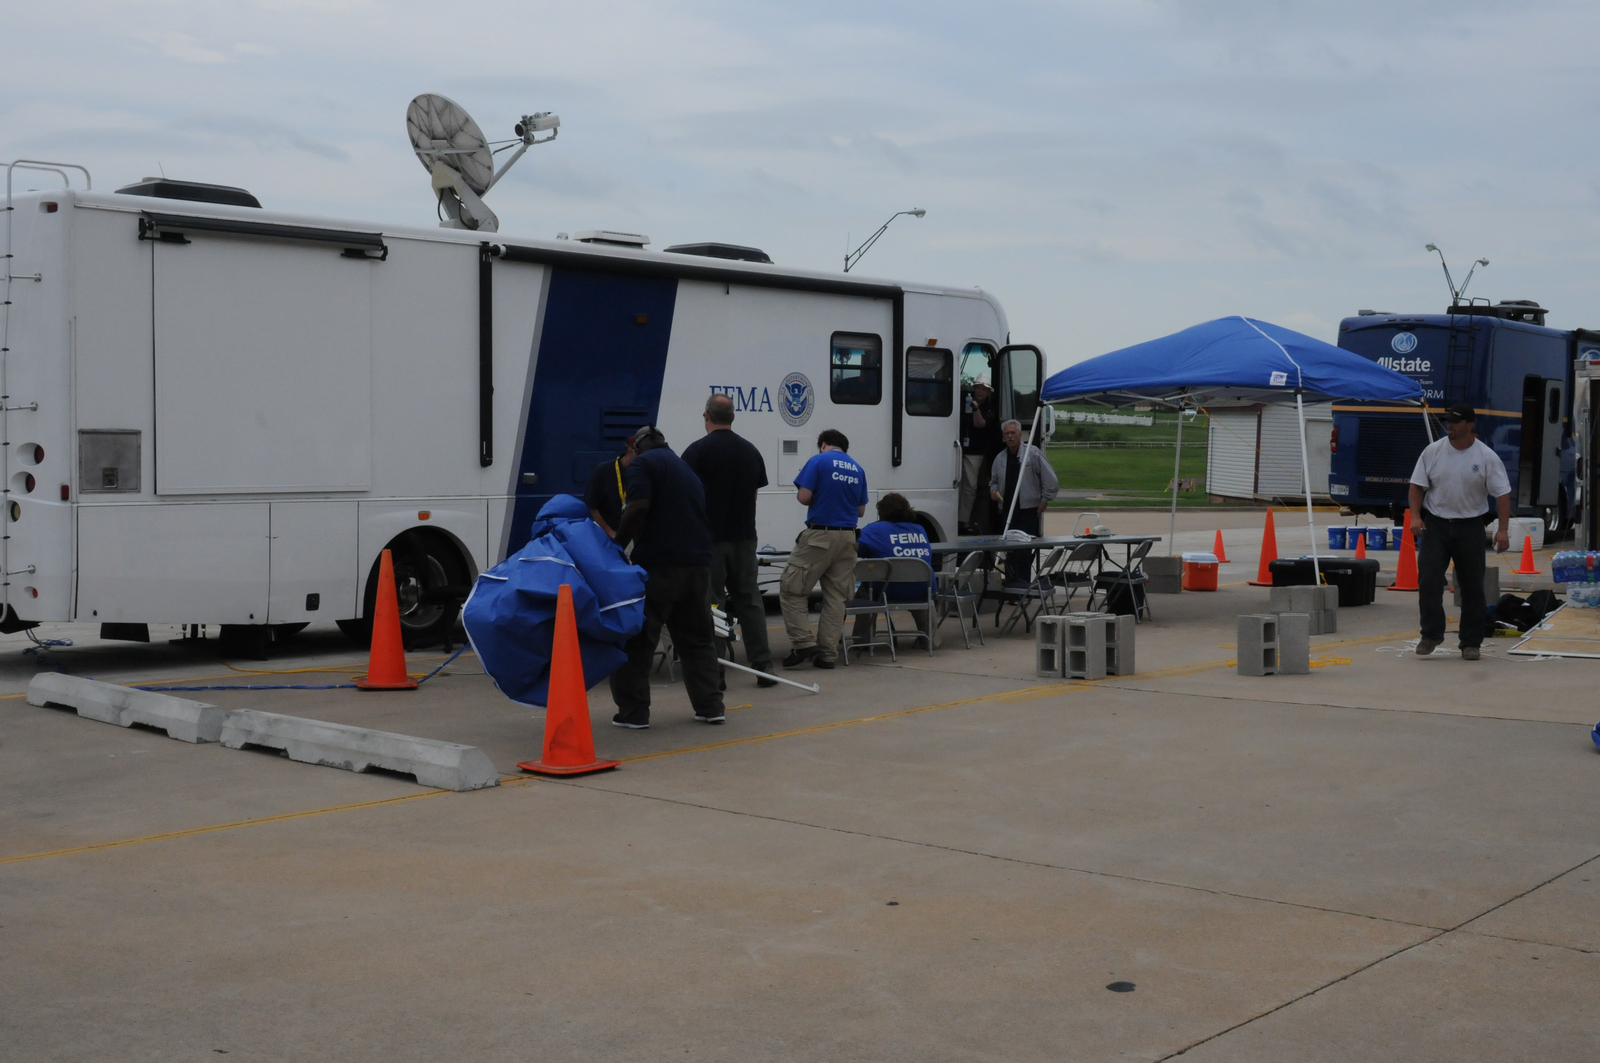 Shawnee, Okla., May 28, 2013 -- FEMA Corps Disaster Survivors Assistance Team (DSAT) members are helping to set up this Mobile Intake Registration Center (MIRC) vehicle at the Gordon Cooper Technology Center. FEMA is here in response to the tornadoes of May 19-20.  George Armstrong/FEMA